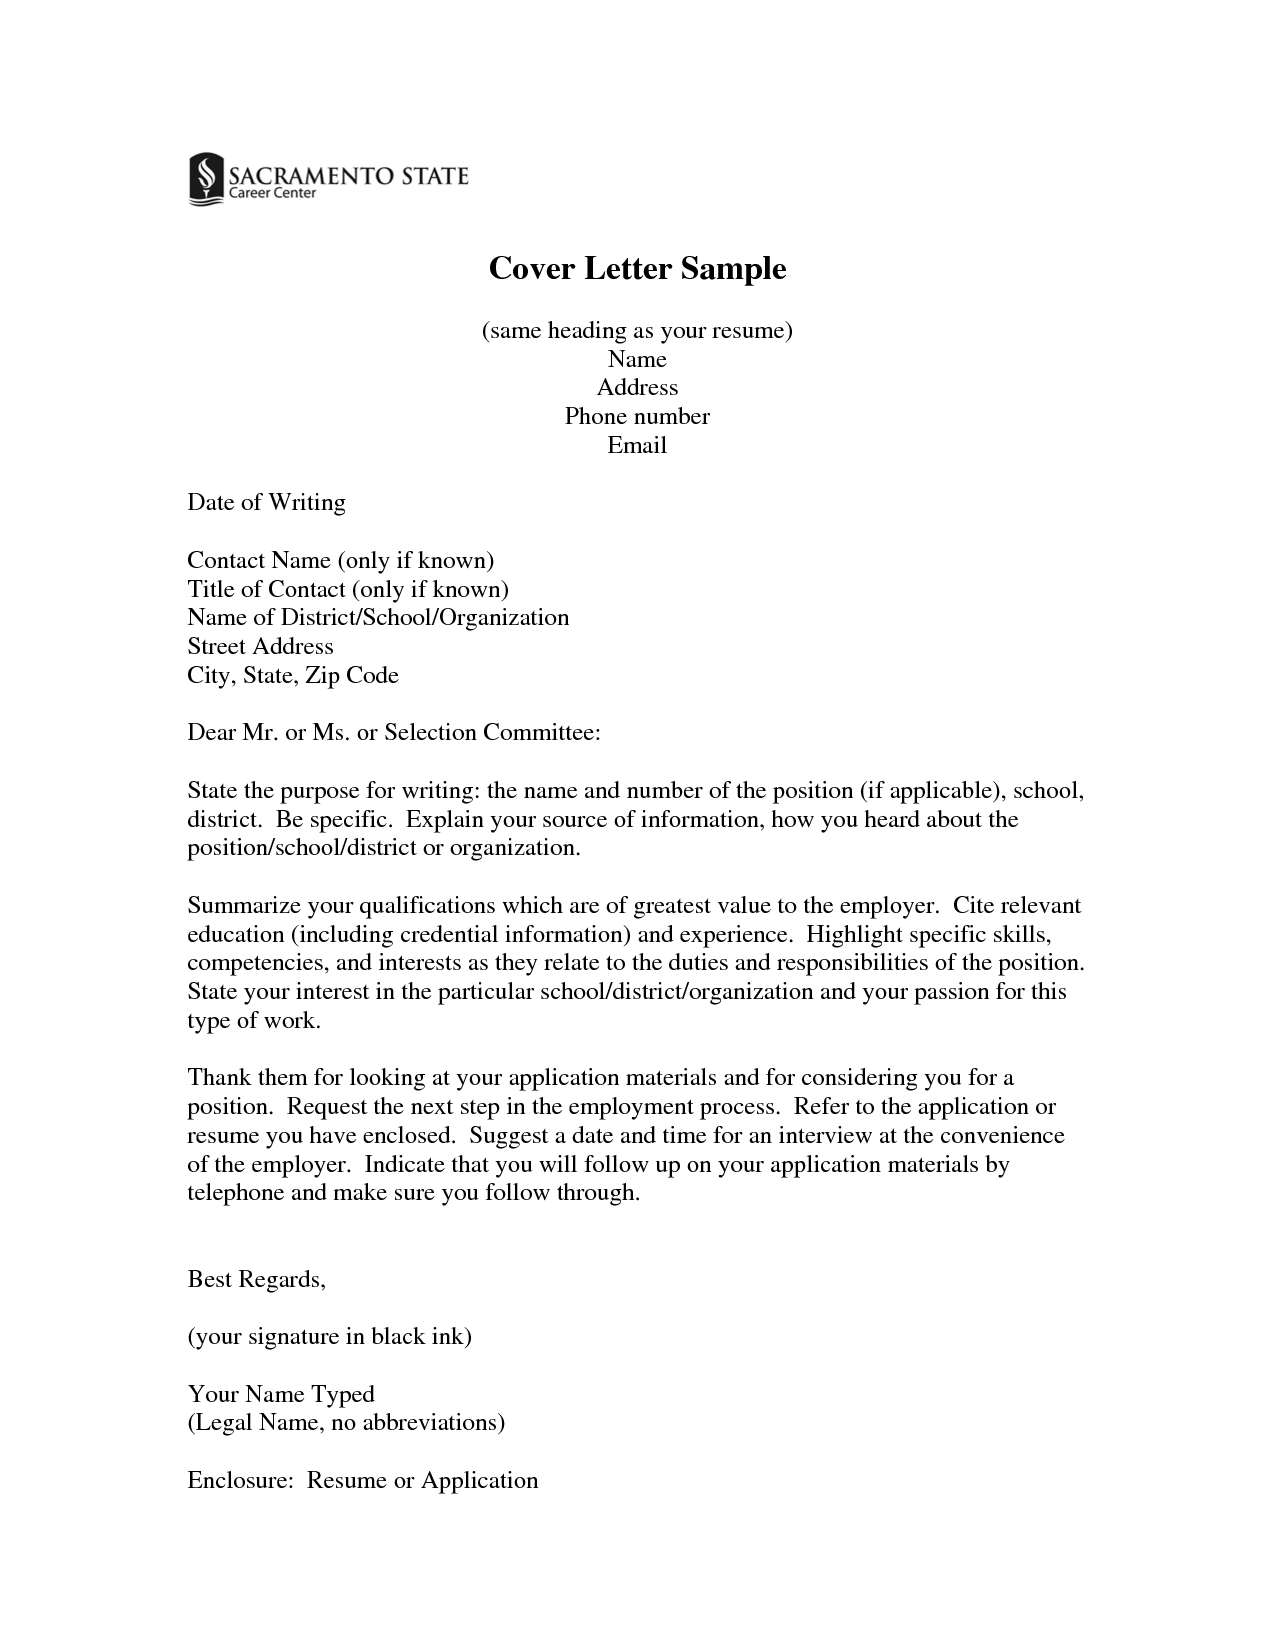 how to write a cover letter for construction job - same cover letters for resume cover letter sample same